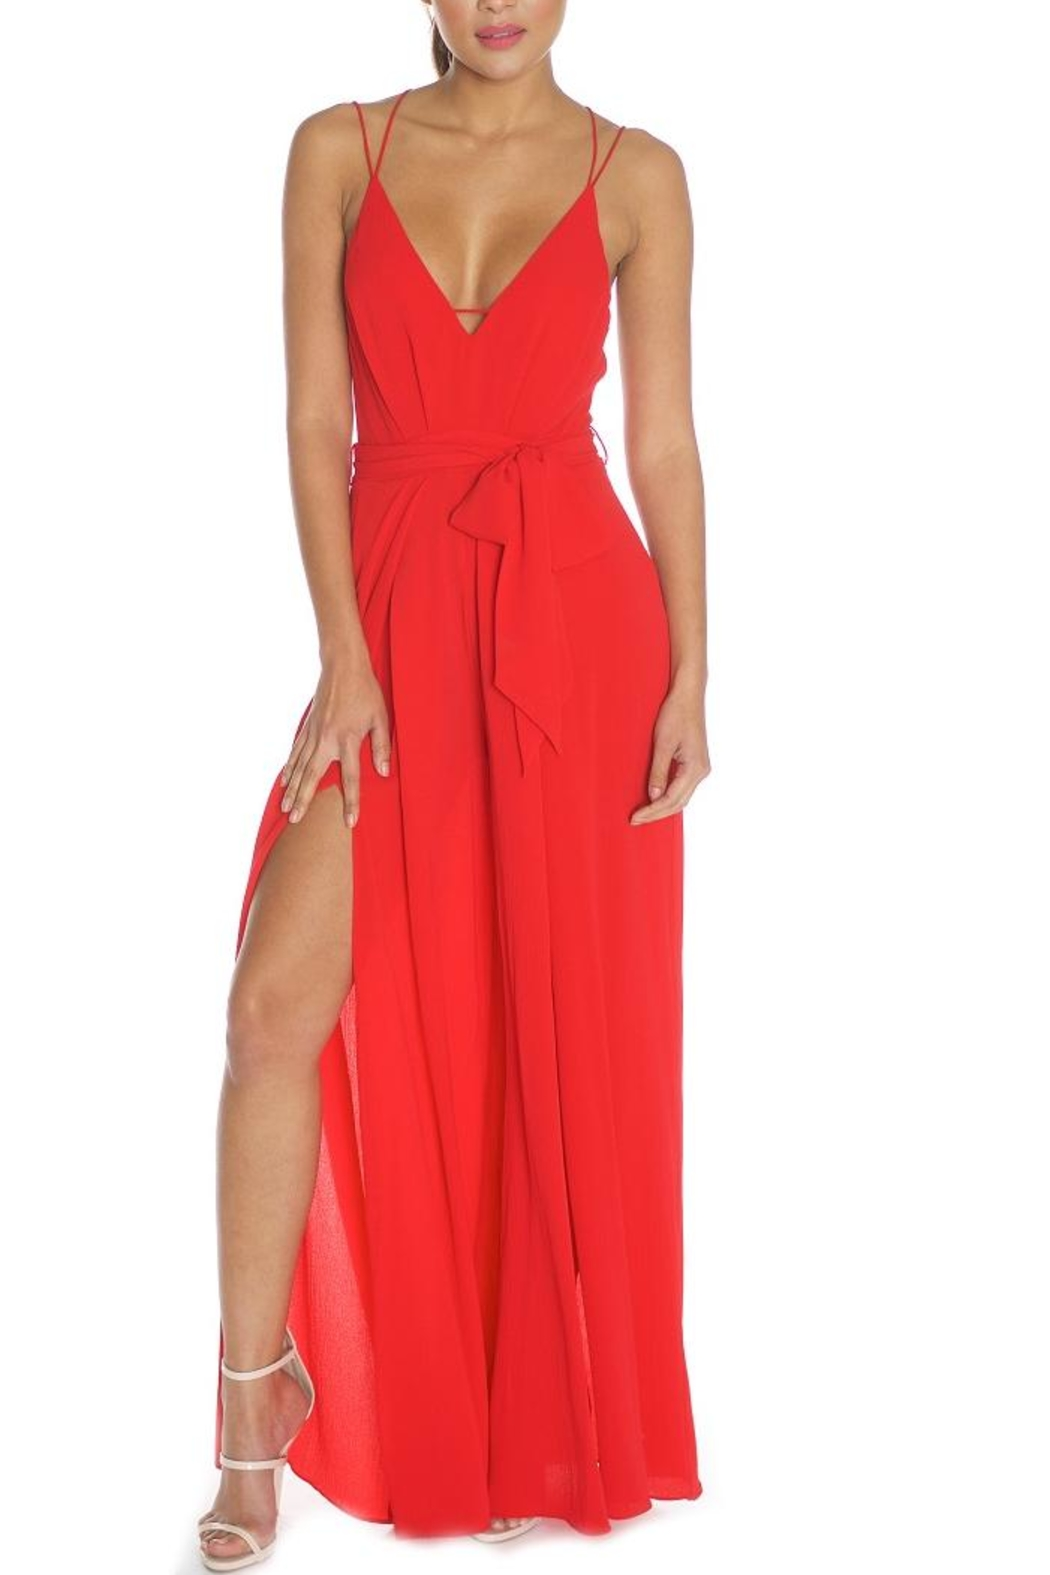 luxxel Strappy Jumpsuit - Main Image